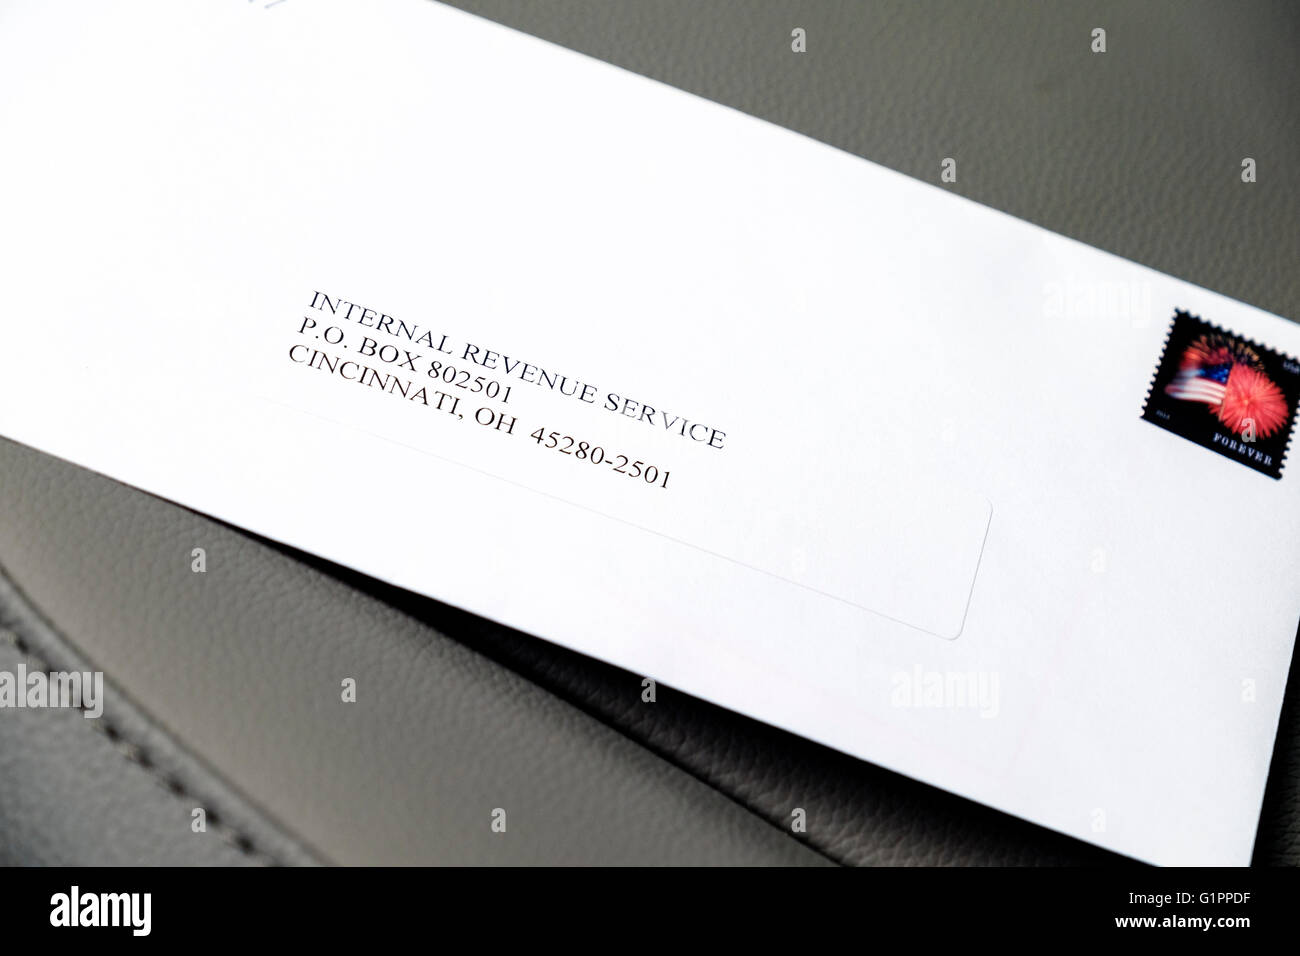 An envelope with the Internal Revenue Service address and stamp. Stock Photo